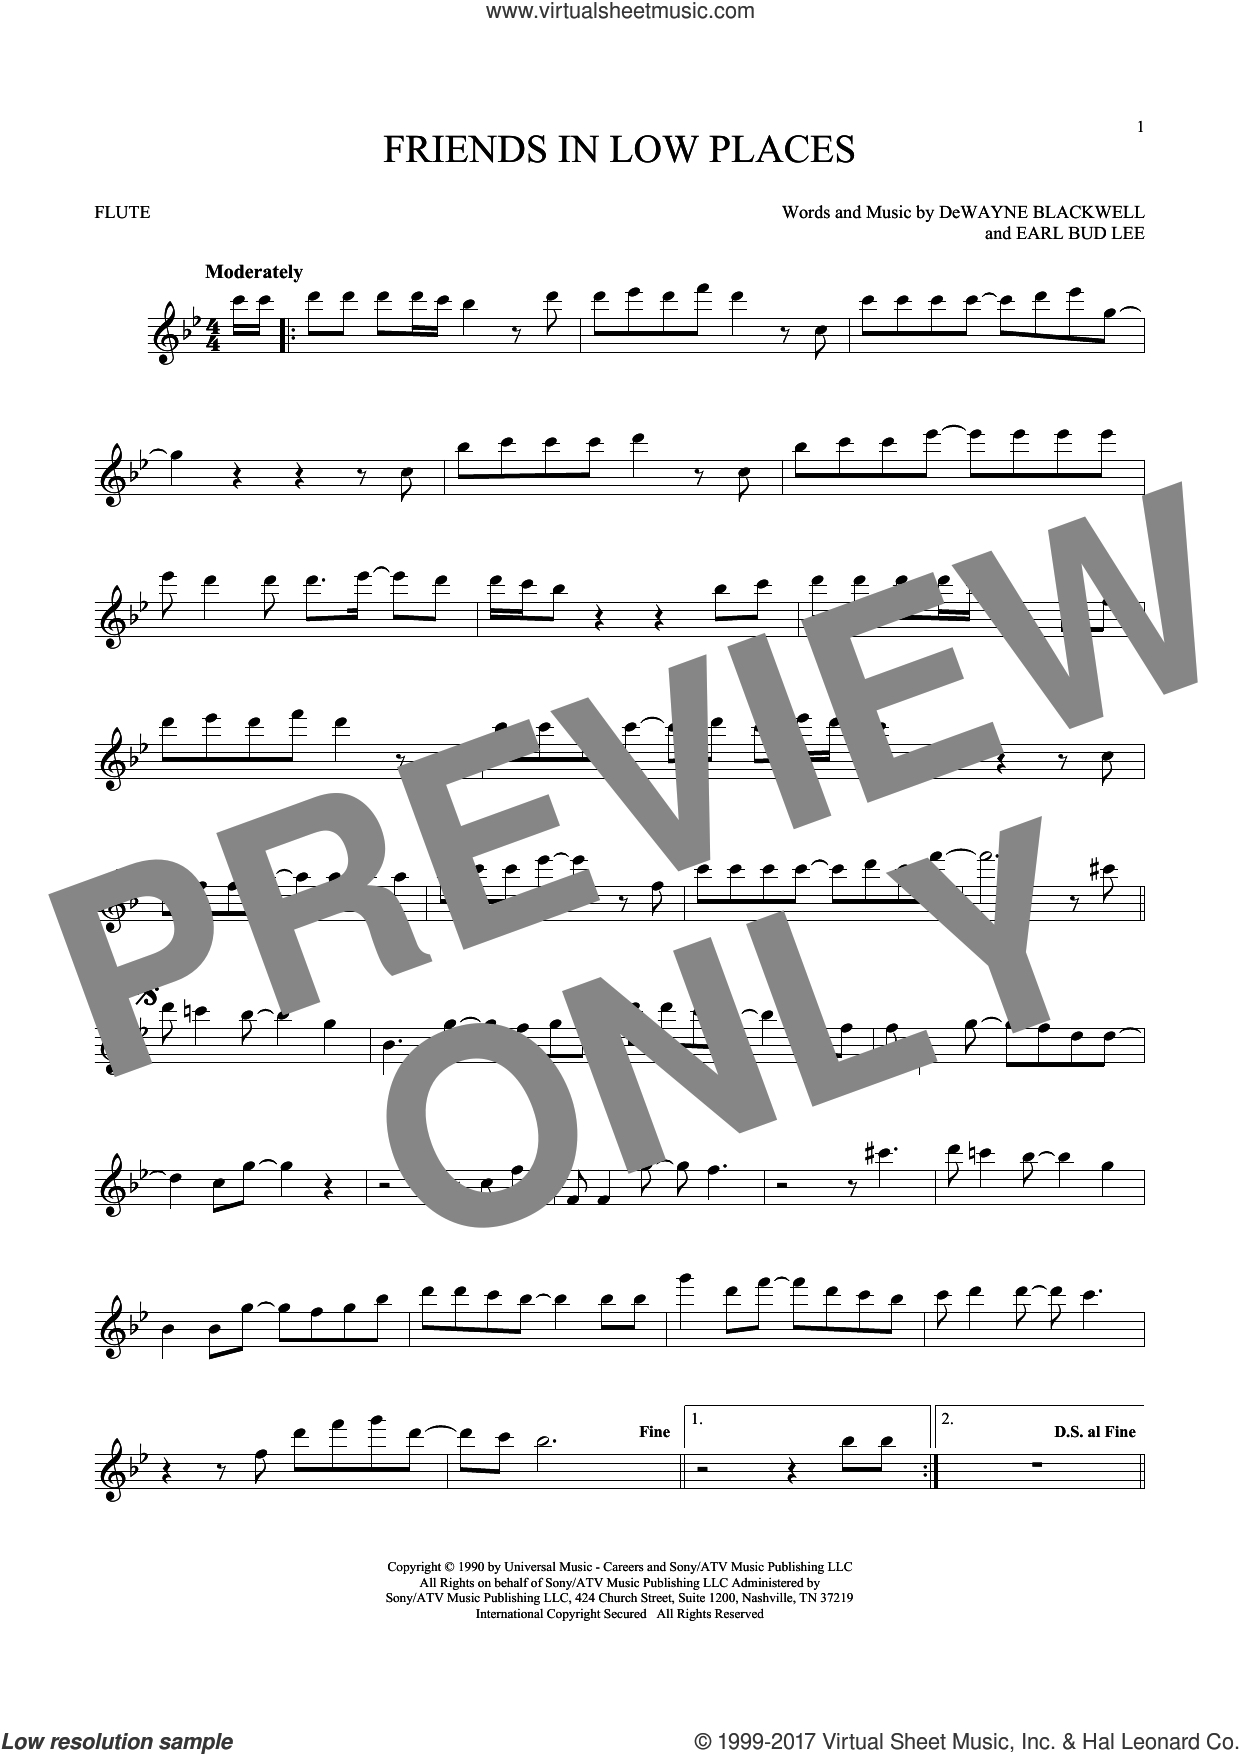 Friends In Low Places sheet music for flute solo by Earl Bud Lee, Garth Brooks and DeWayne Blackwell. Score Image Preview.